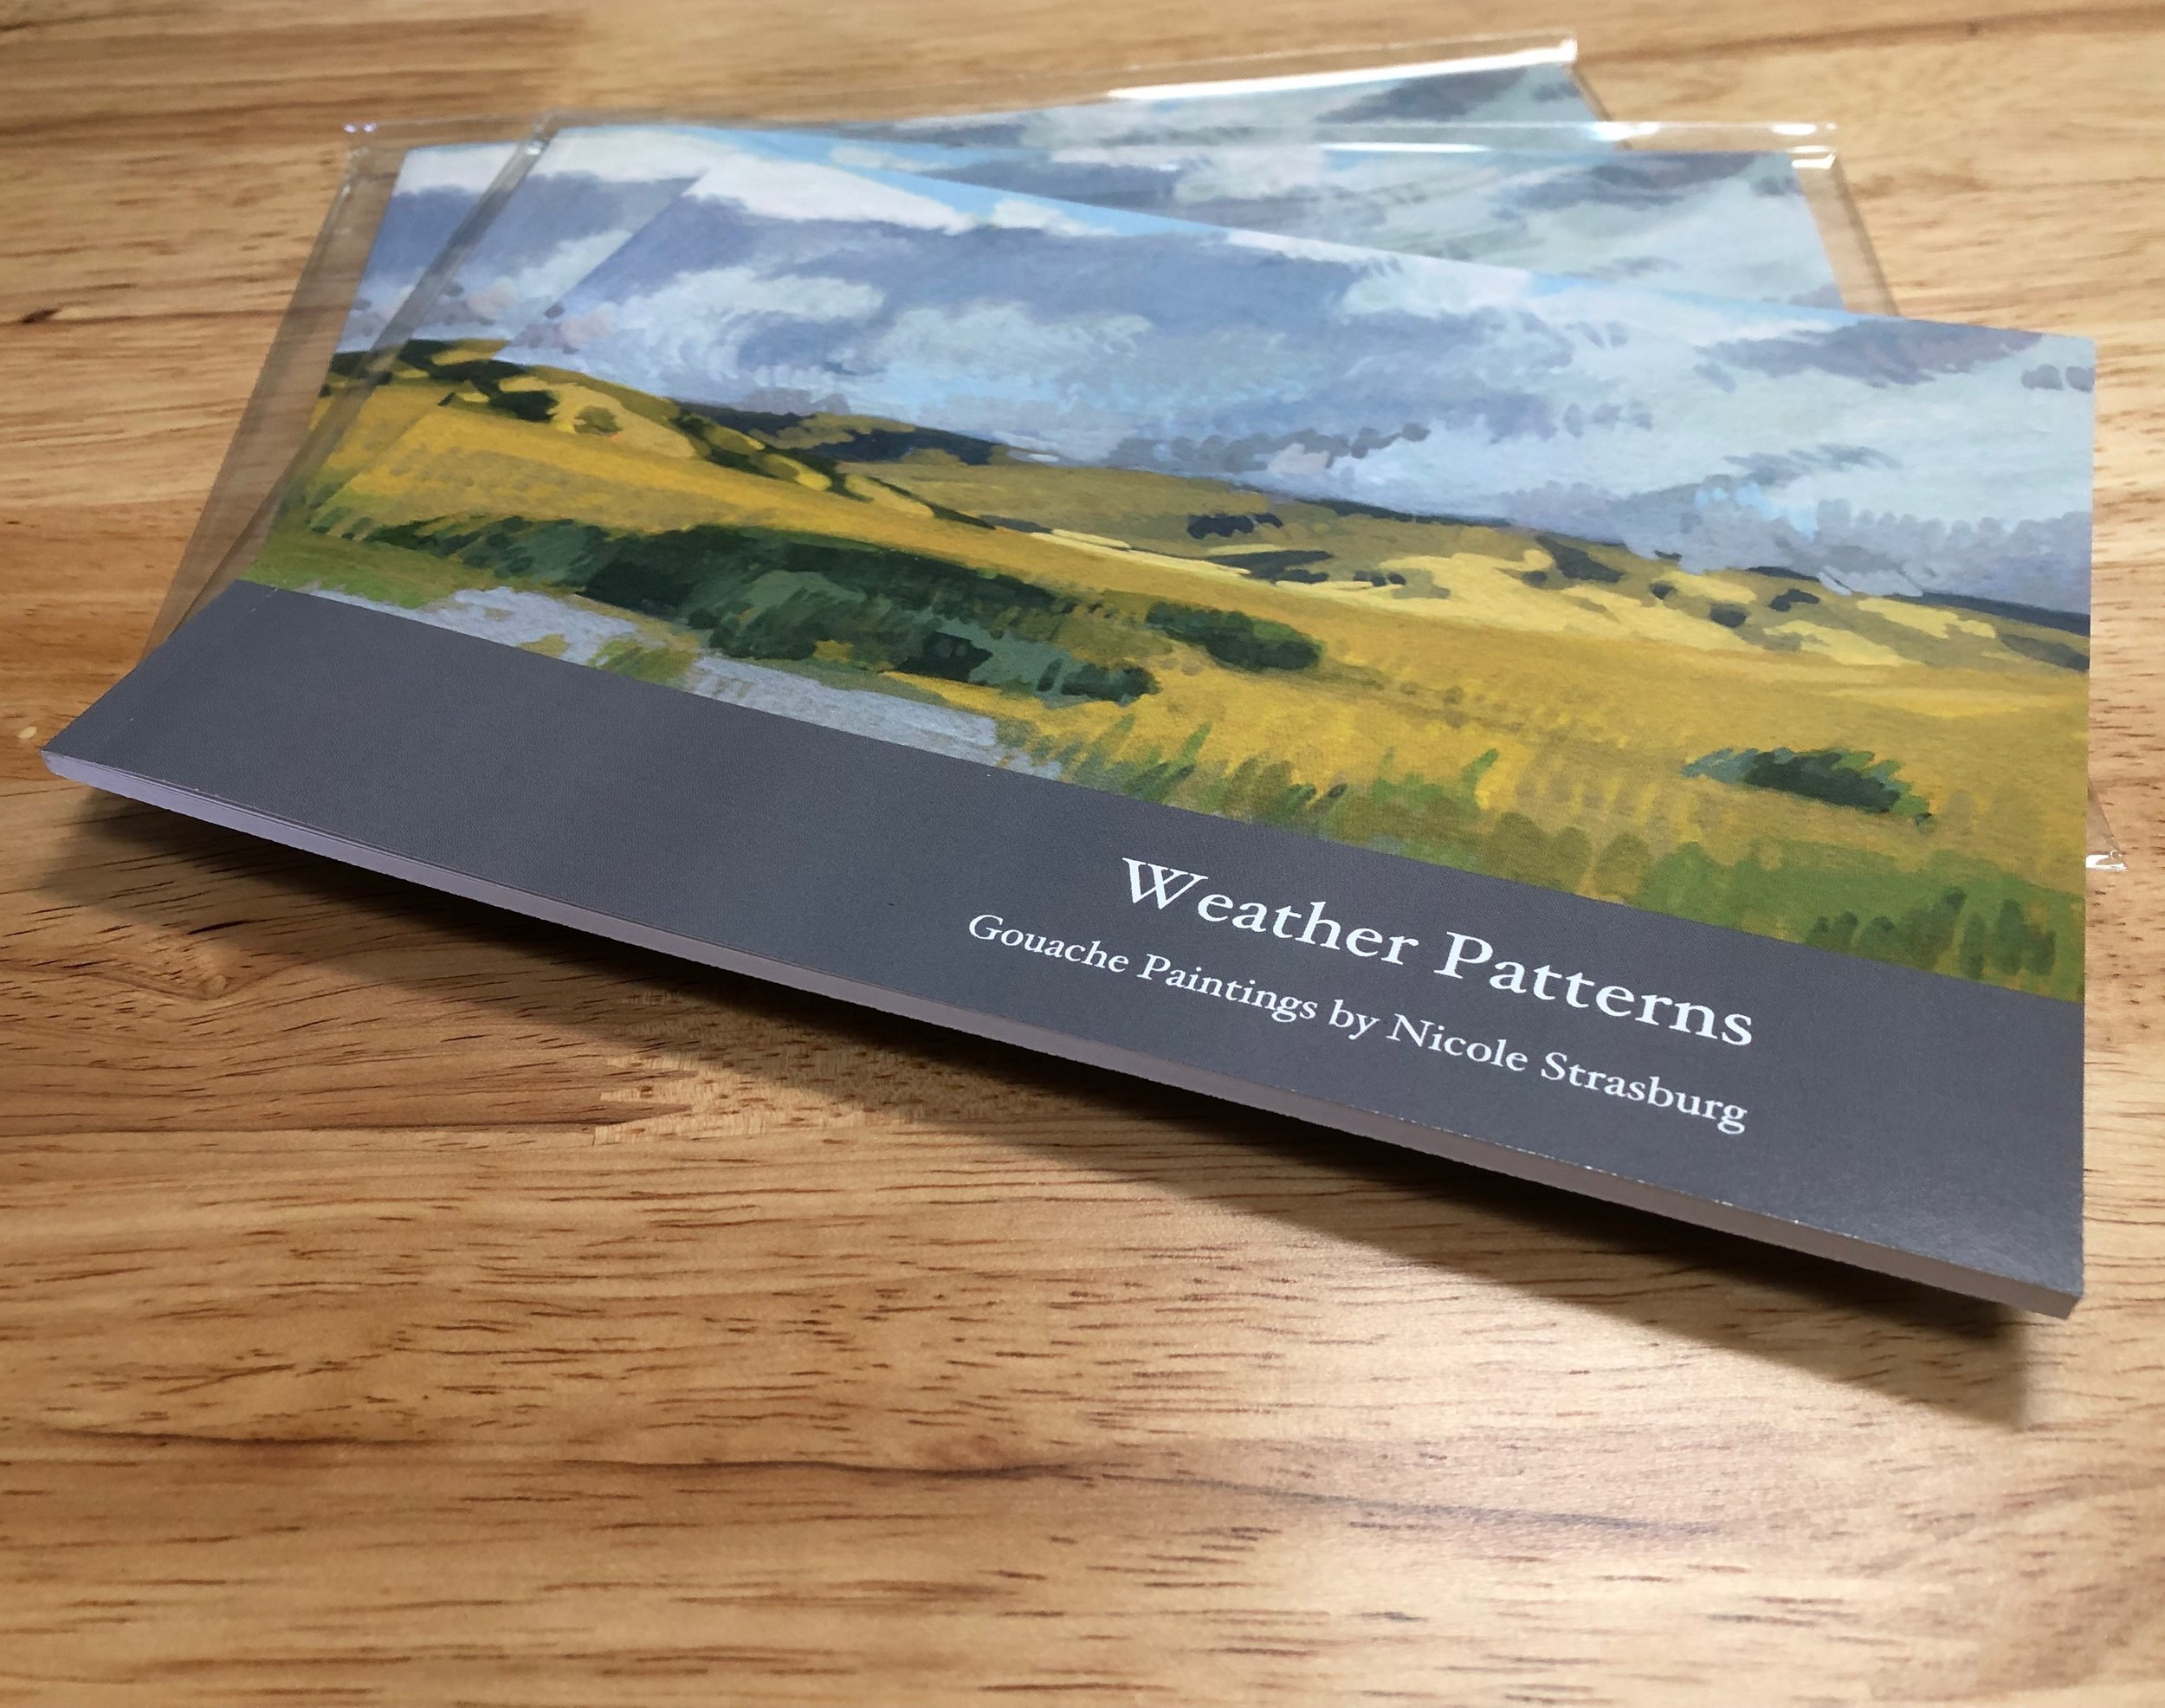 Weather Patterns soft cover book